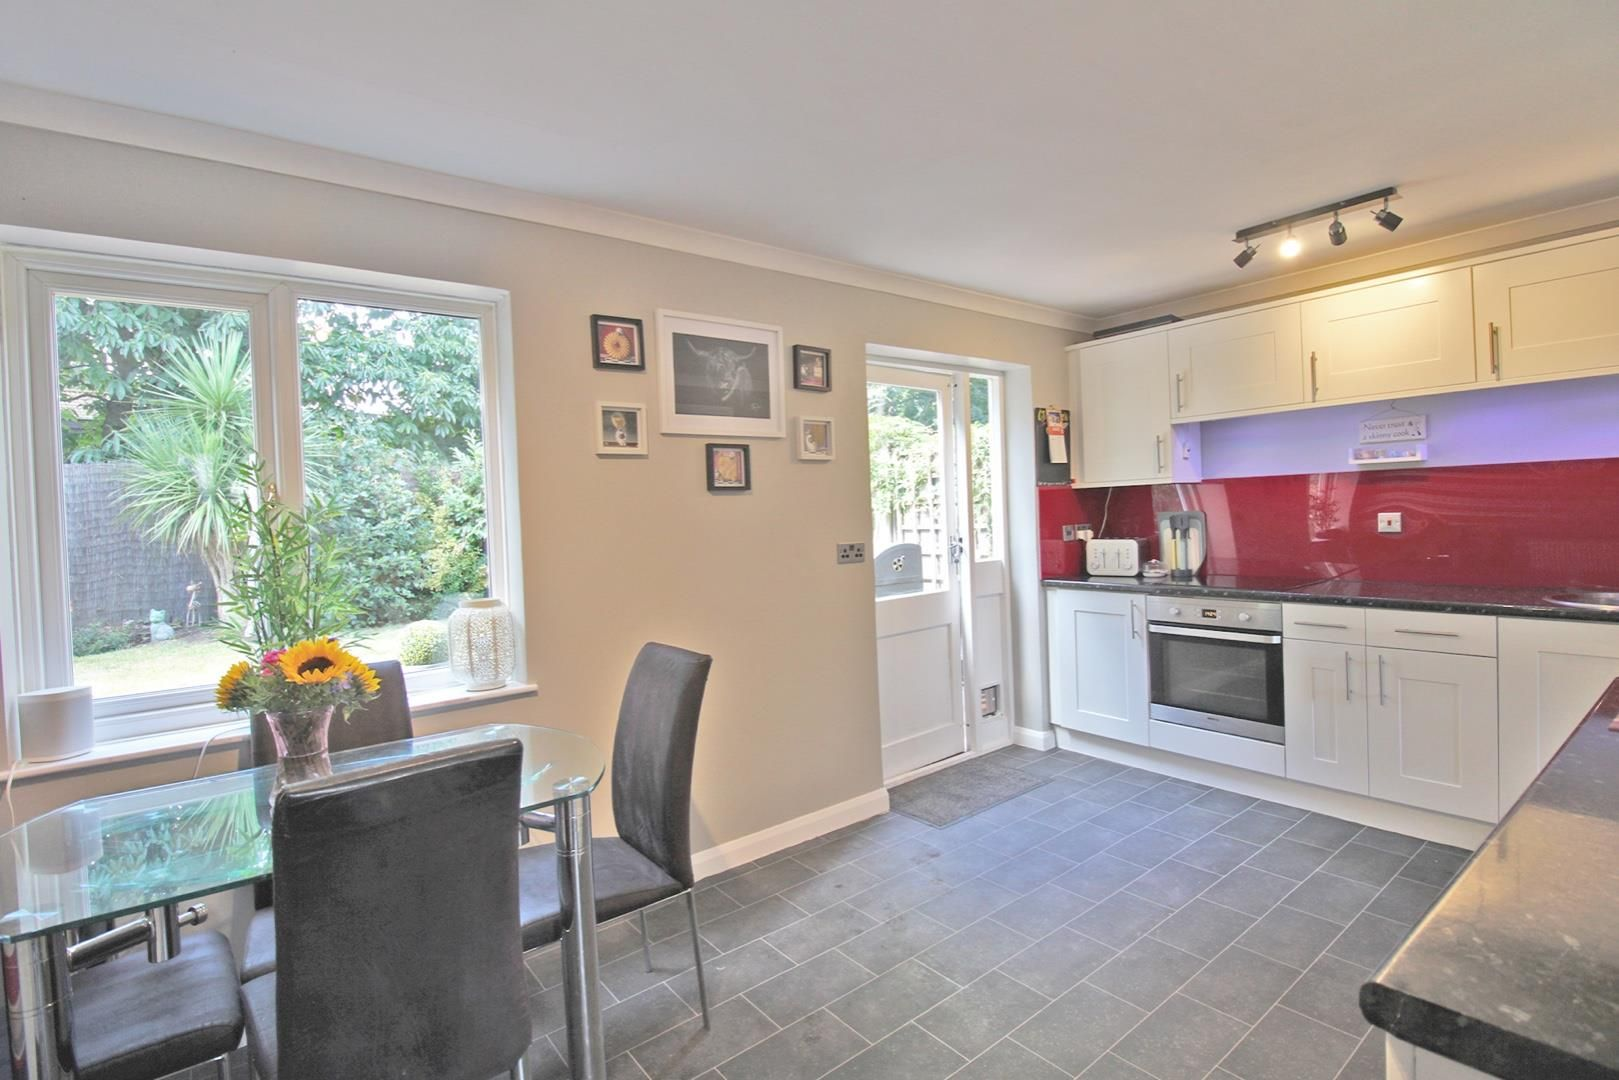 3 bed terraced for sale in Hanworth  - Property Image 6